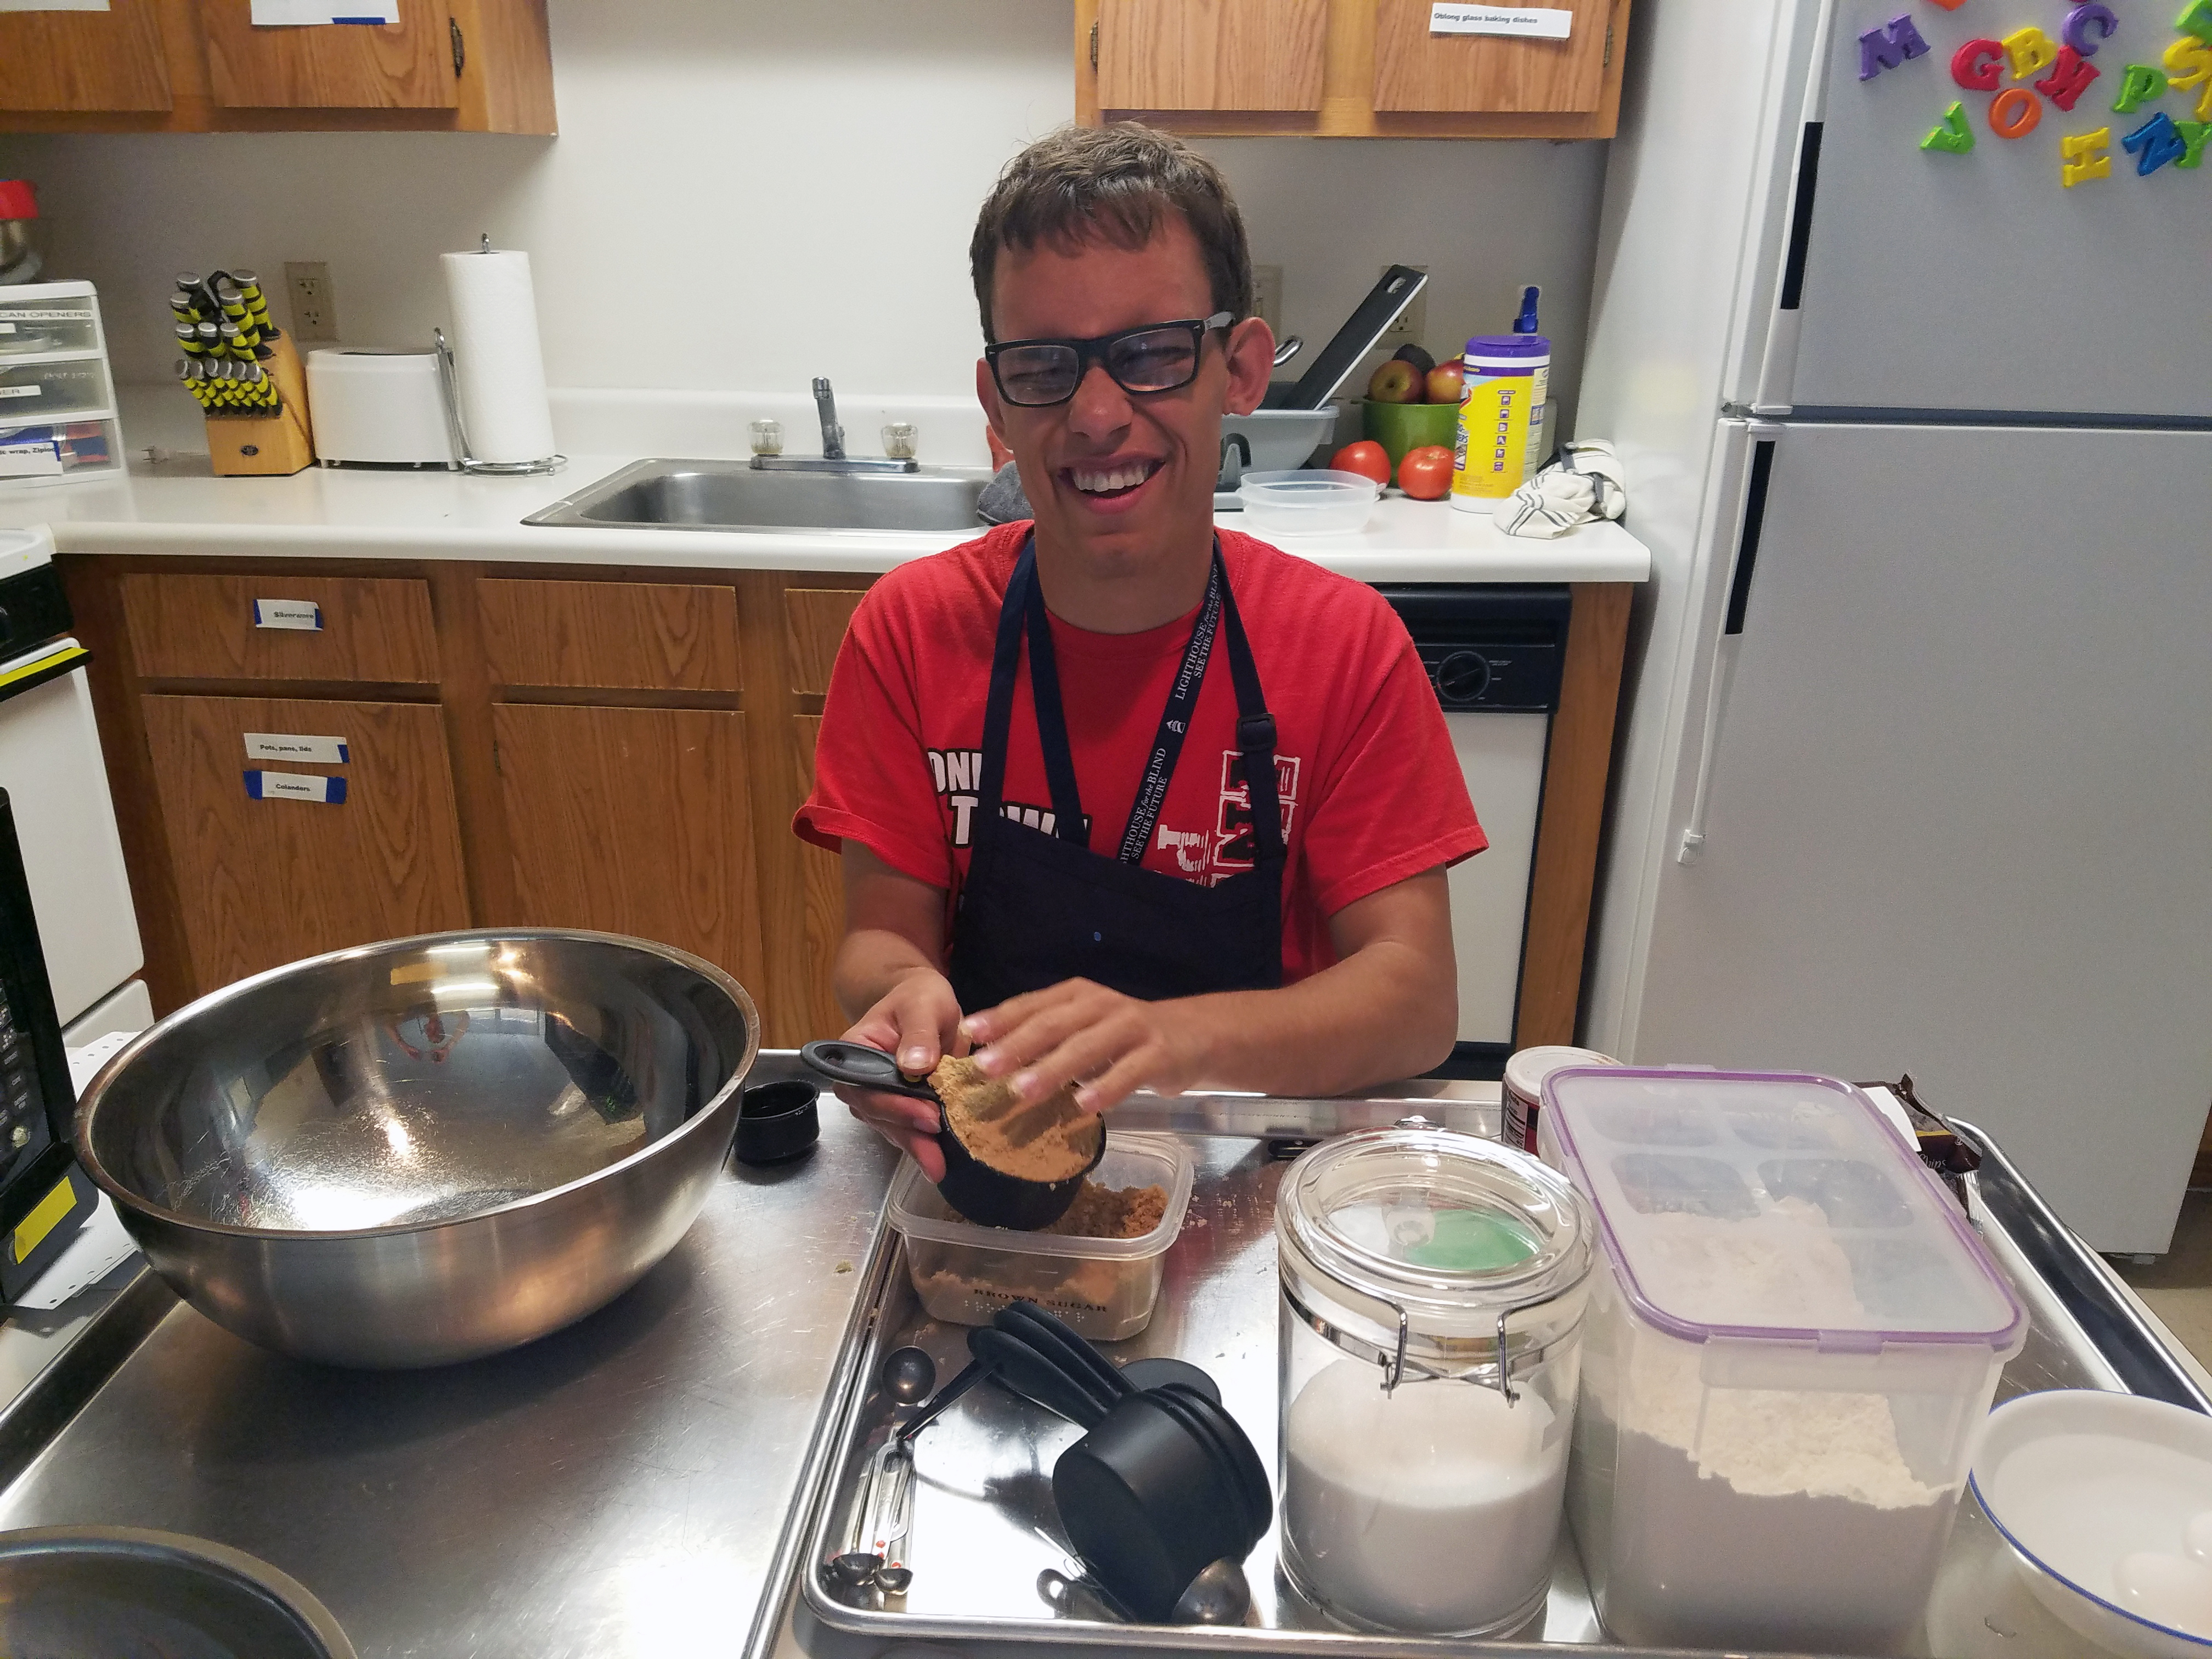 Justin Learning To Cook During His Kitchen Domain Instruction. SOAR 2018.